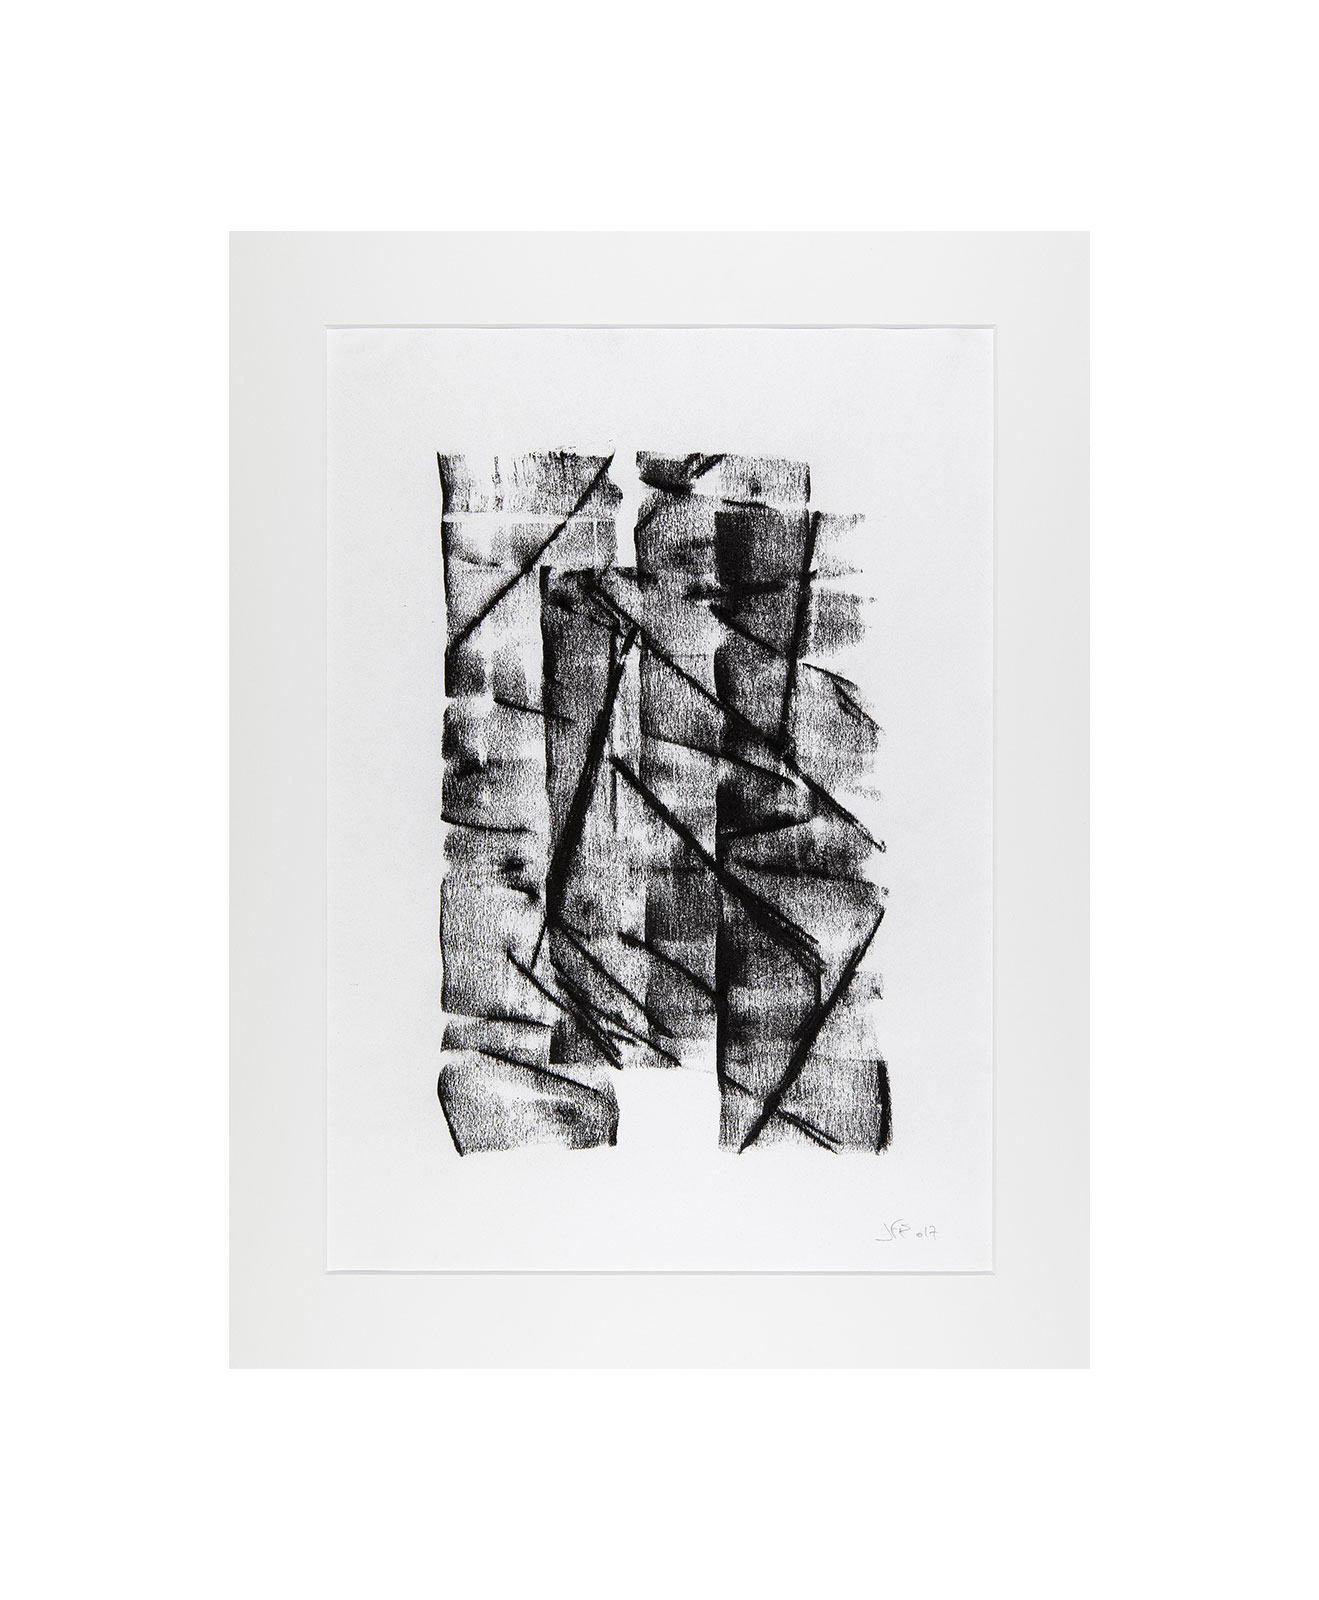 Cha 1.8, Charcoal on paper, black and white artwork, drawing, jf escande, contemporary art